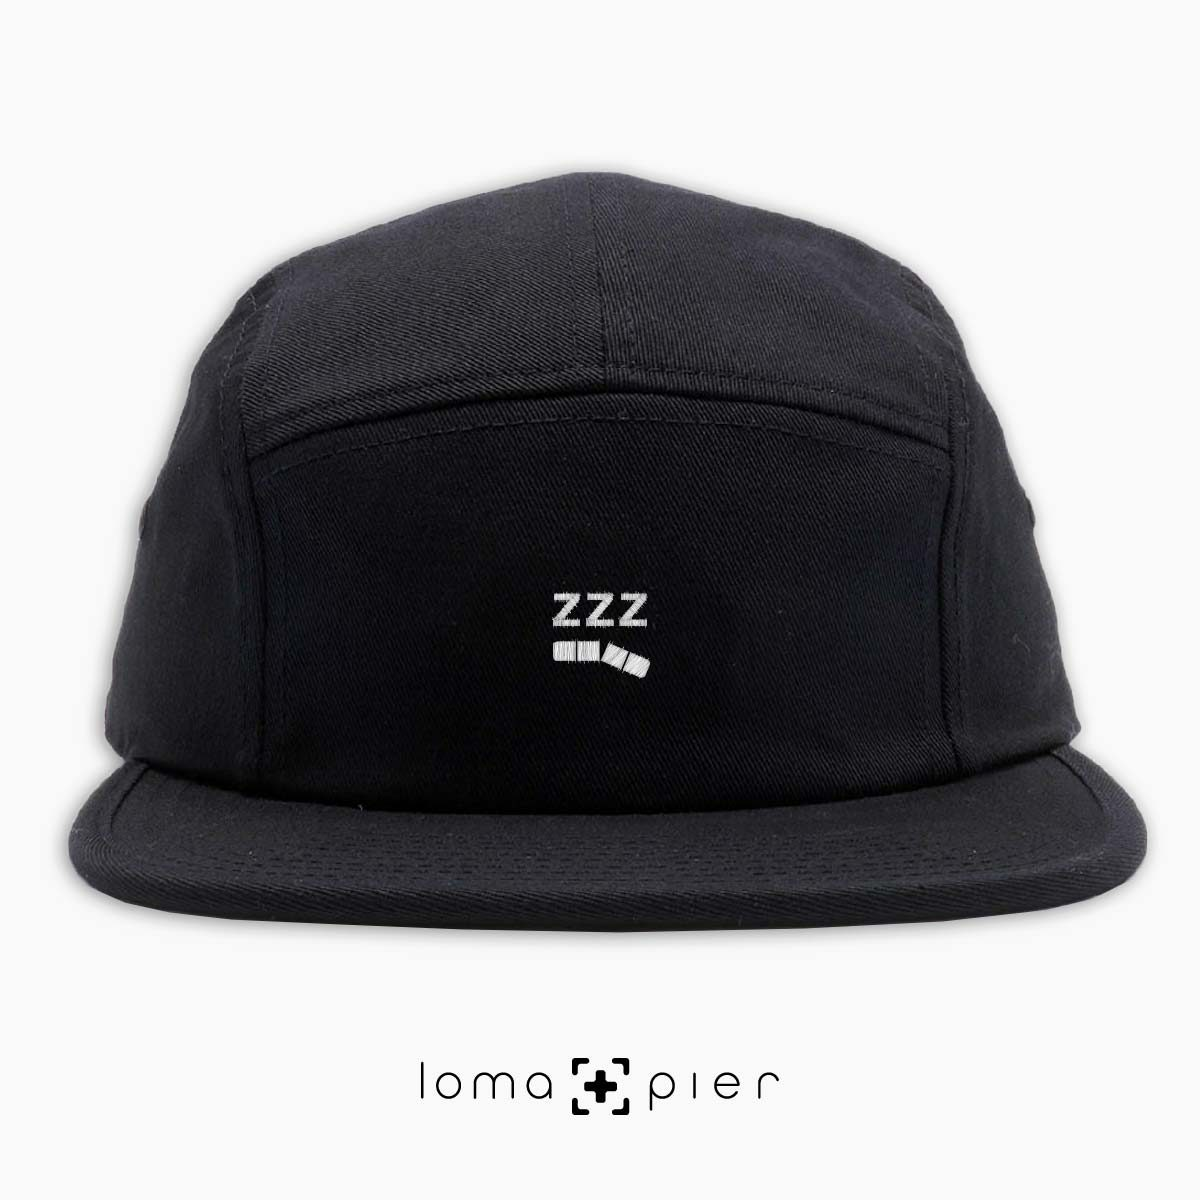 ZZZ-ANNY icon embroidered on a black cotton 5-panel hat with white thread by loma+pier hat store